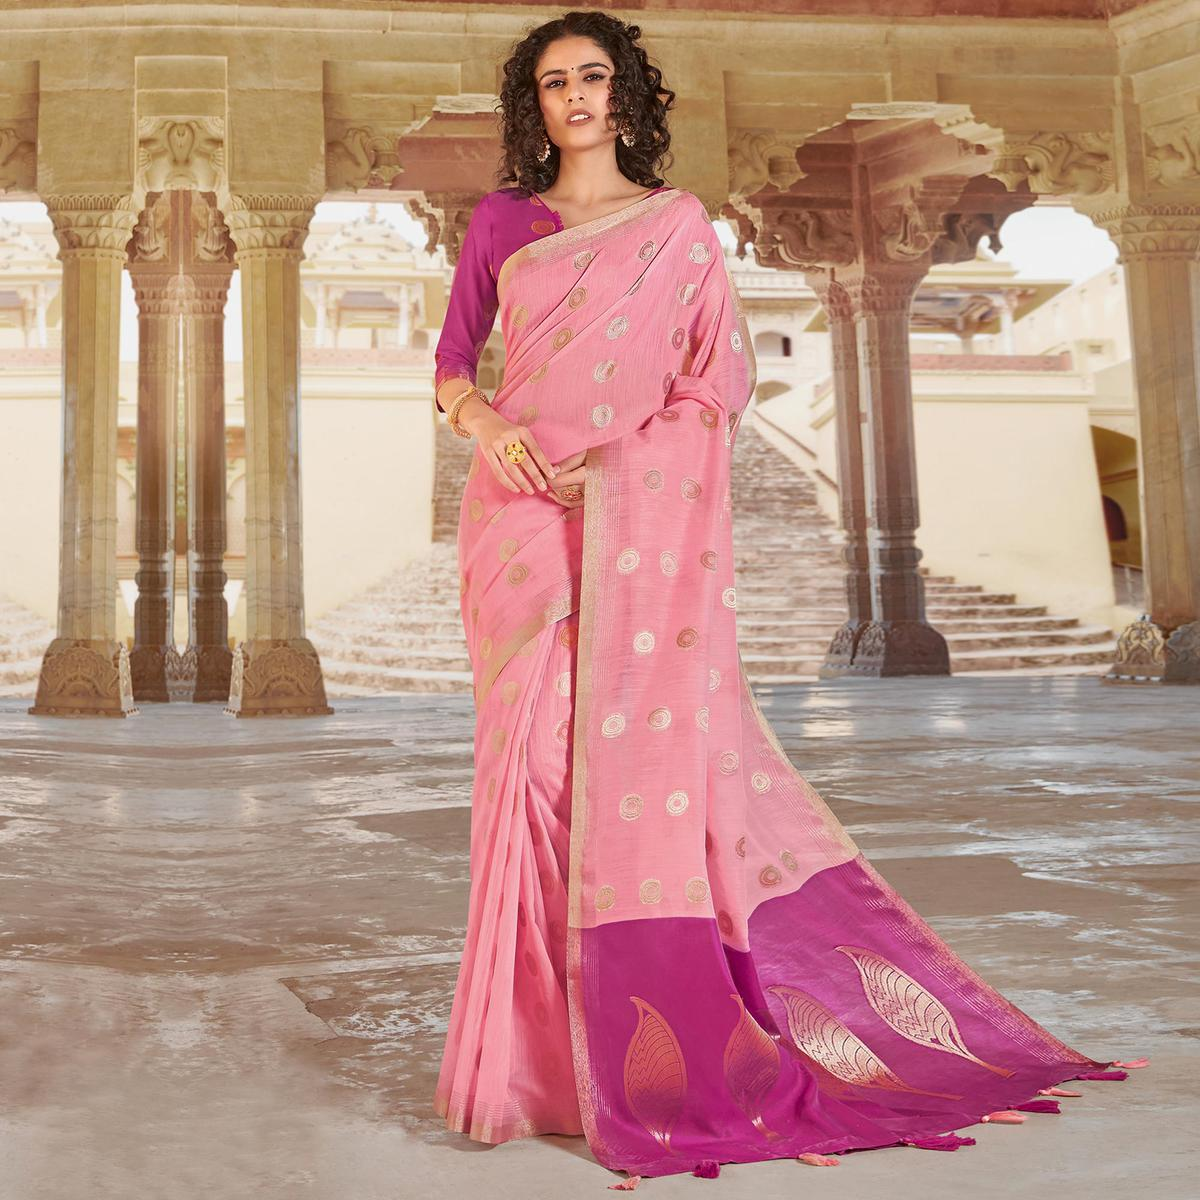 Dazzling Pink Colored Festive Wear Woven Linen Cotton Saree With Tassels